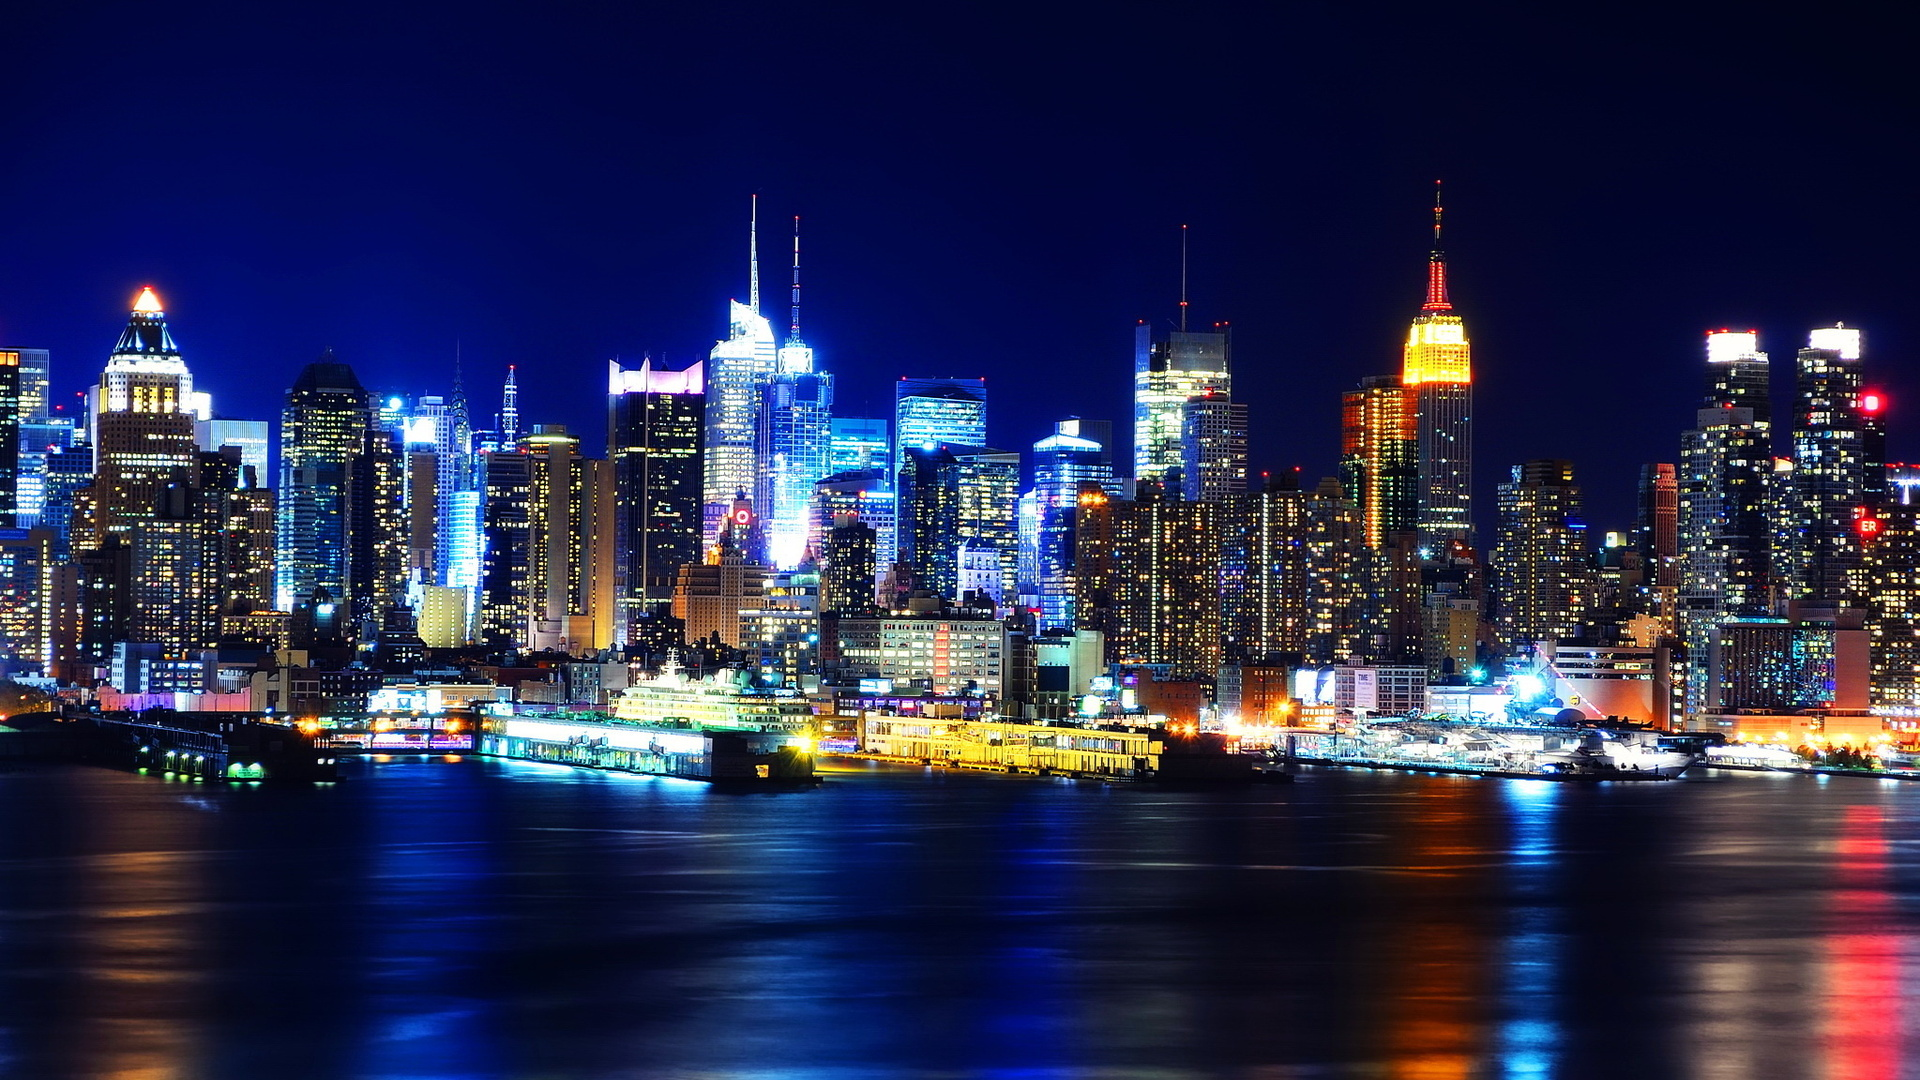 Free Manhattan Wallpaper 29952 1920x1200 px